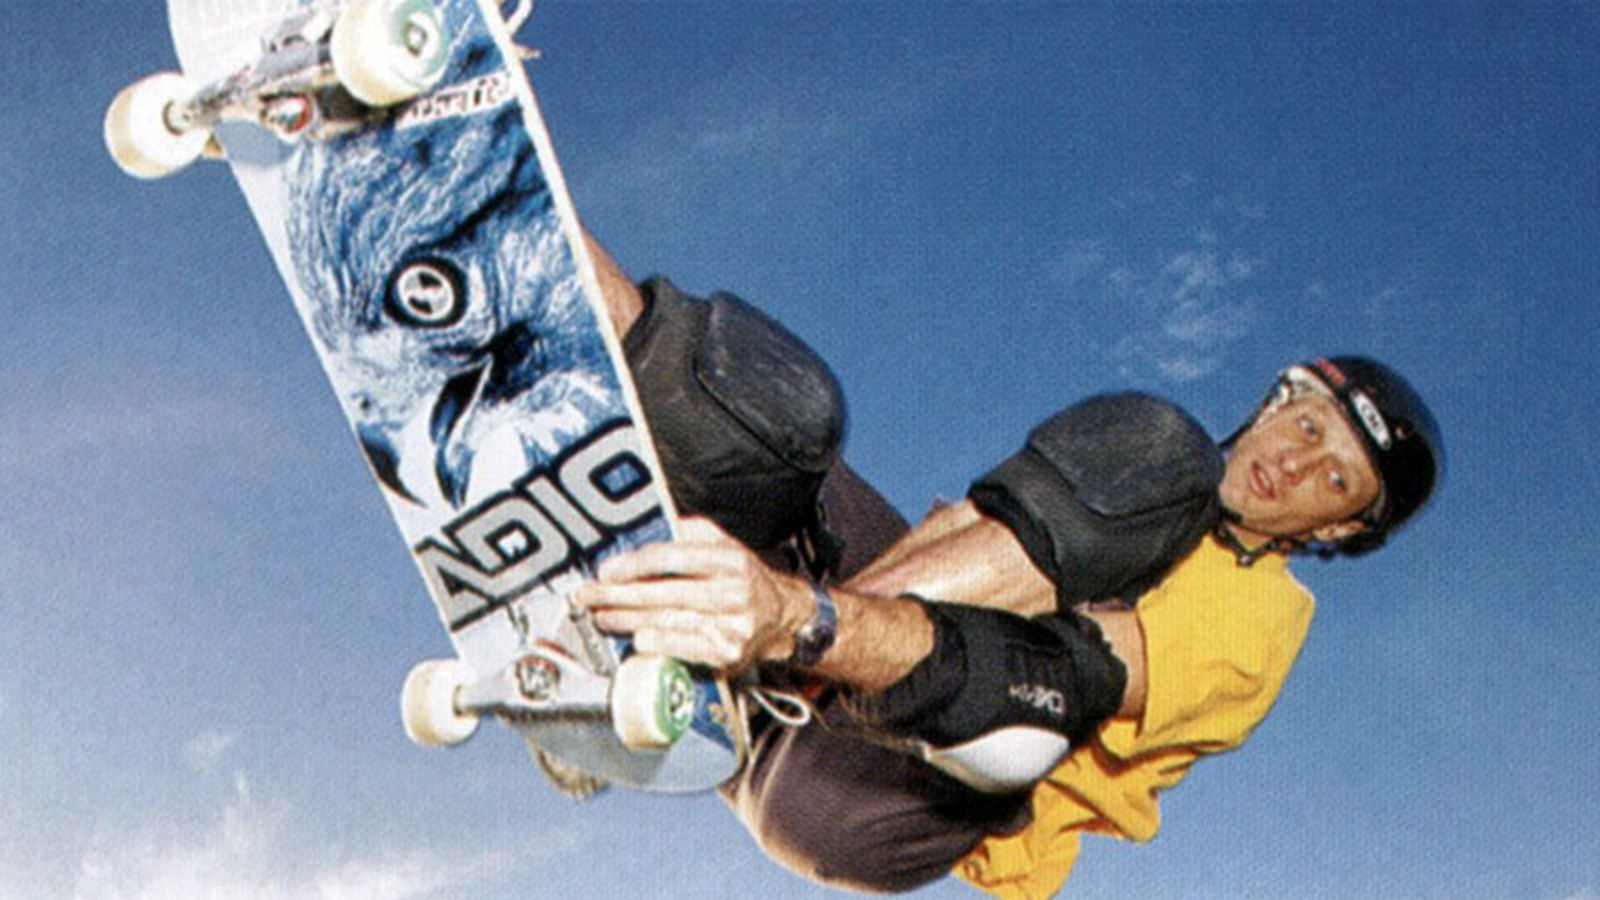 Tony Hawk 5 may have just been leaked by Tony's caterer ...